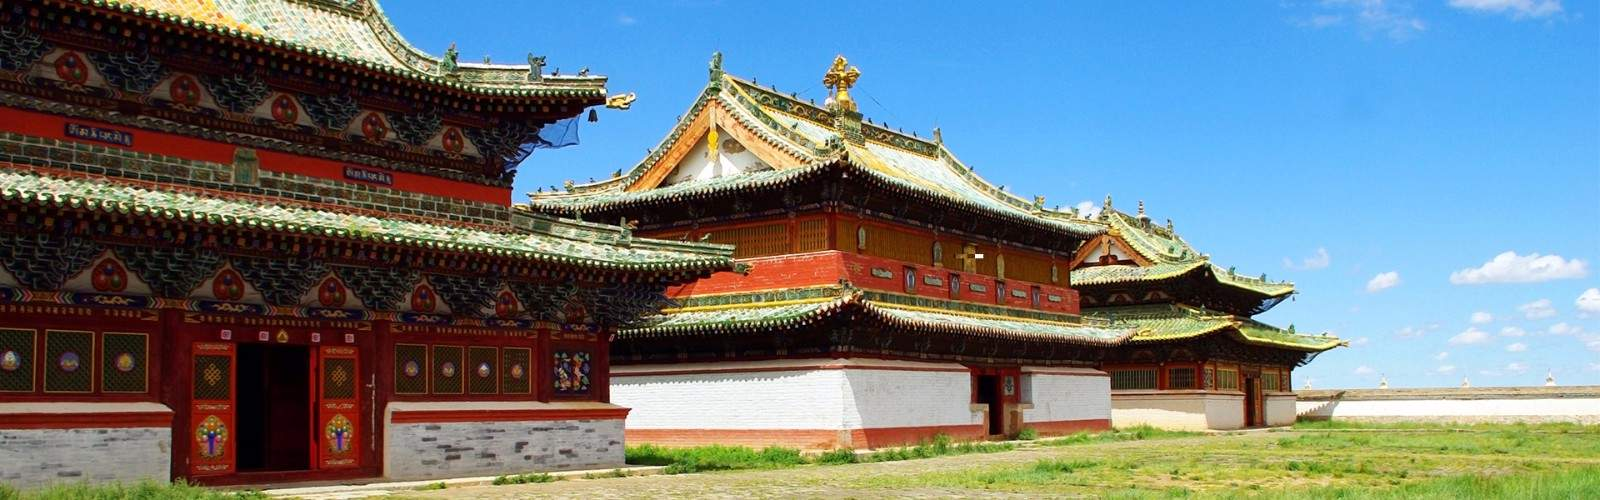 Mongolia and the Naadam Festival Tour Tour | Wendy Wu Tours